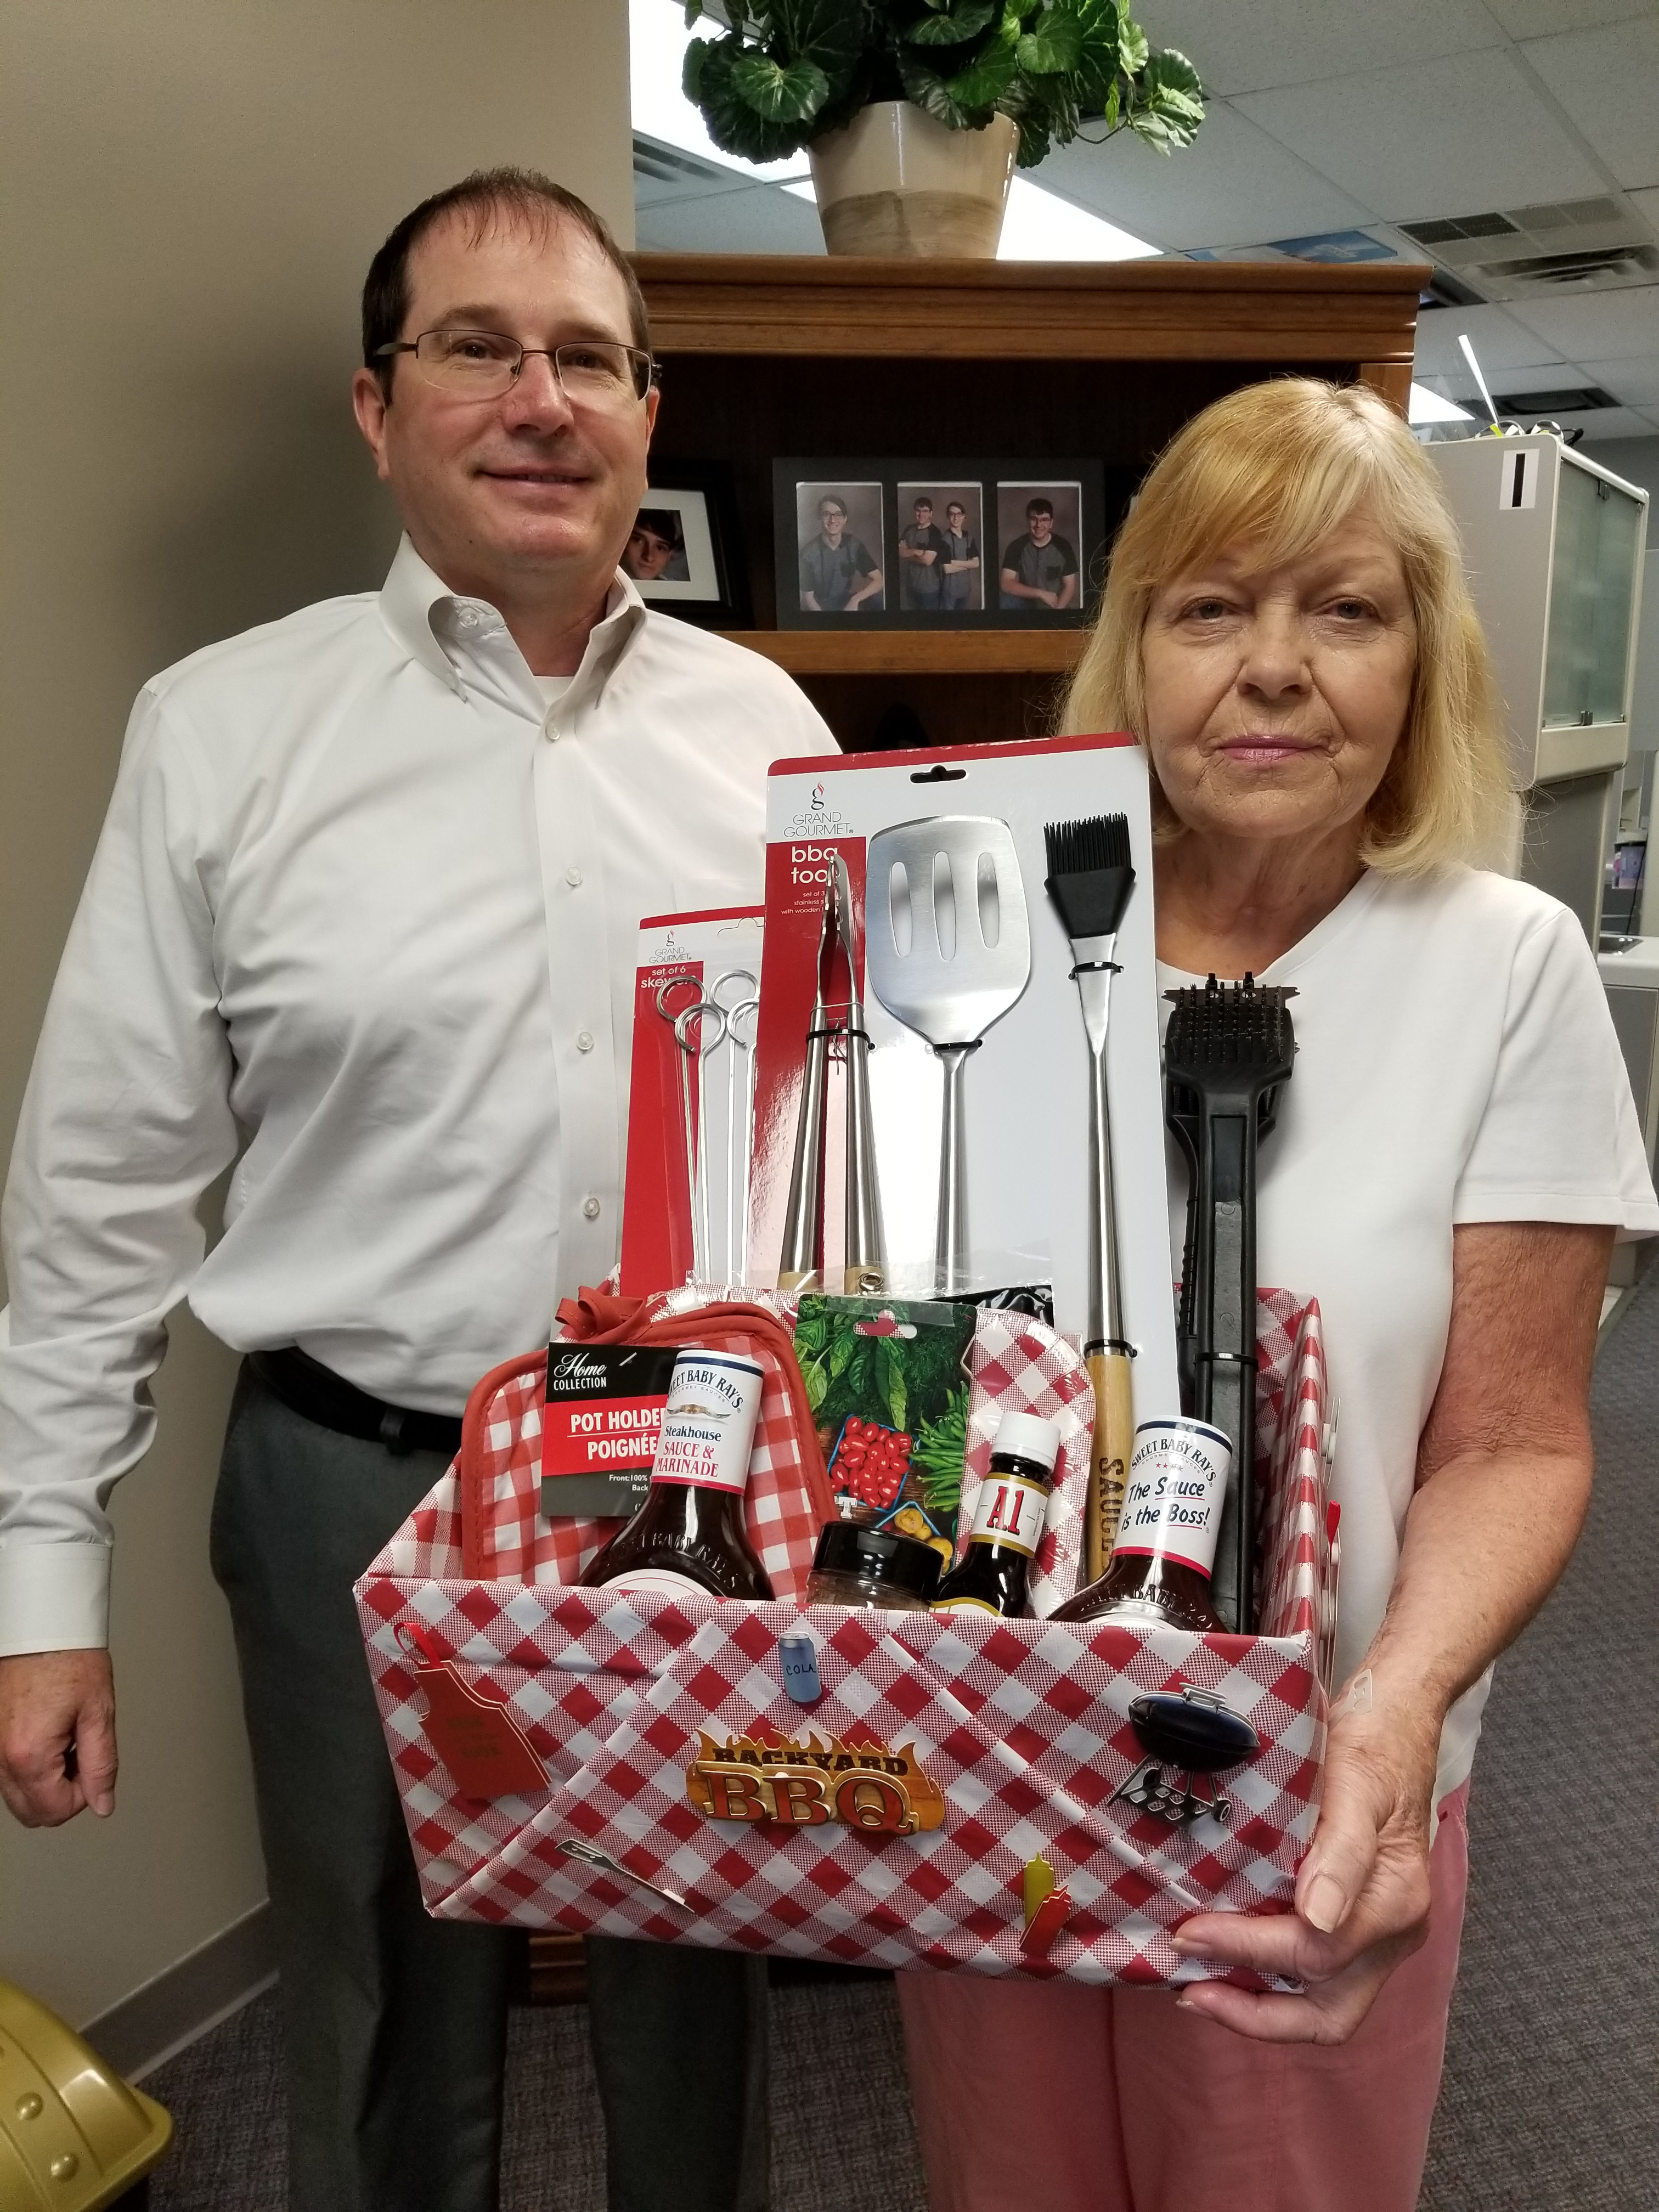 Congratulations to our lucky patient, Margaret. She was the winner of our Patient Appreciation Drawing for a BBQ Gift Basket held on August 13, 2018. She received an assortment of grilling supplies and a $25.00 gift card for Strack and Van Til.